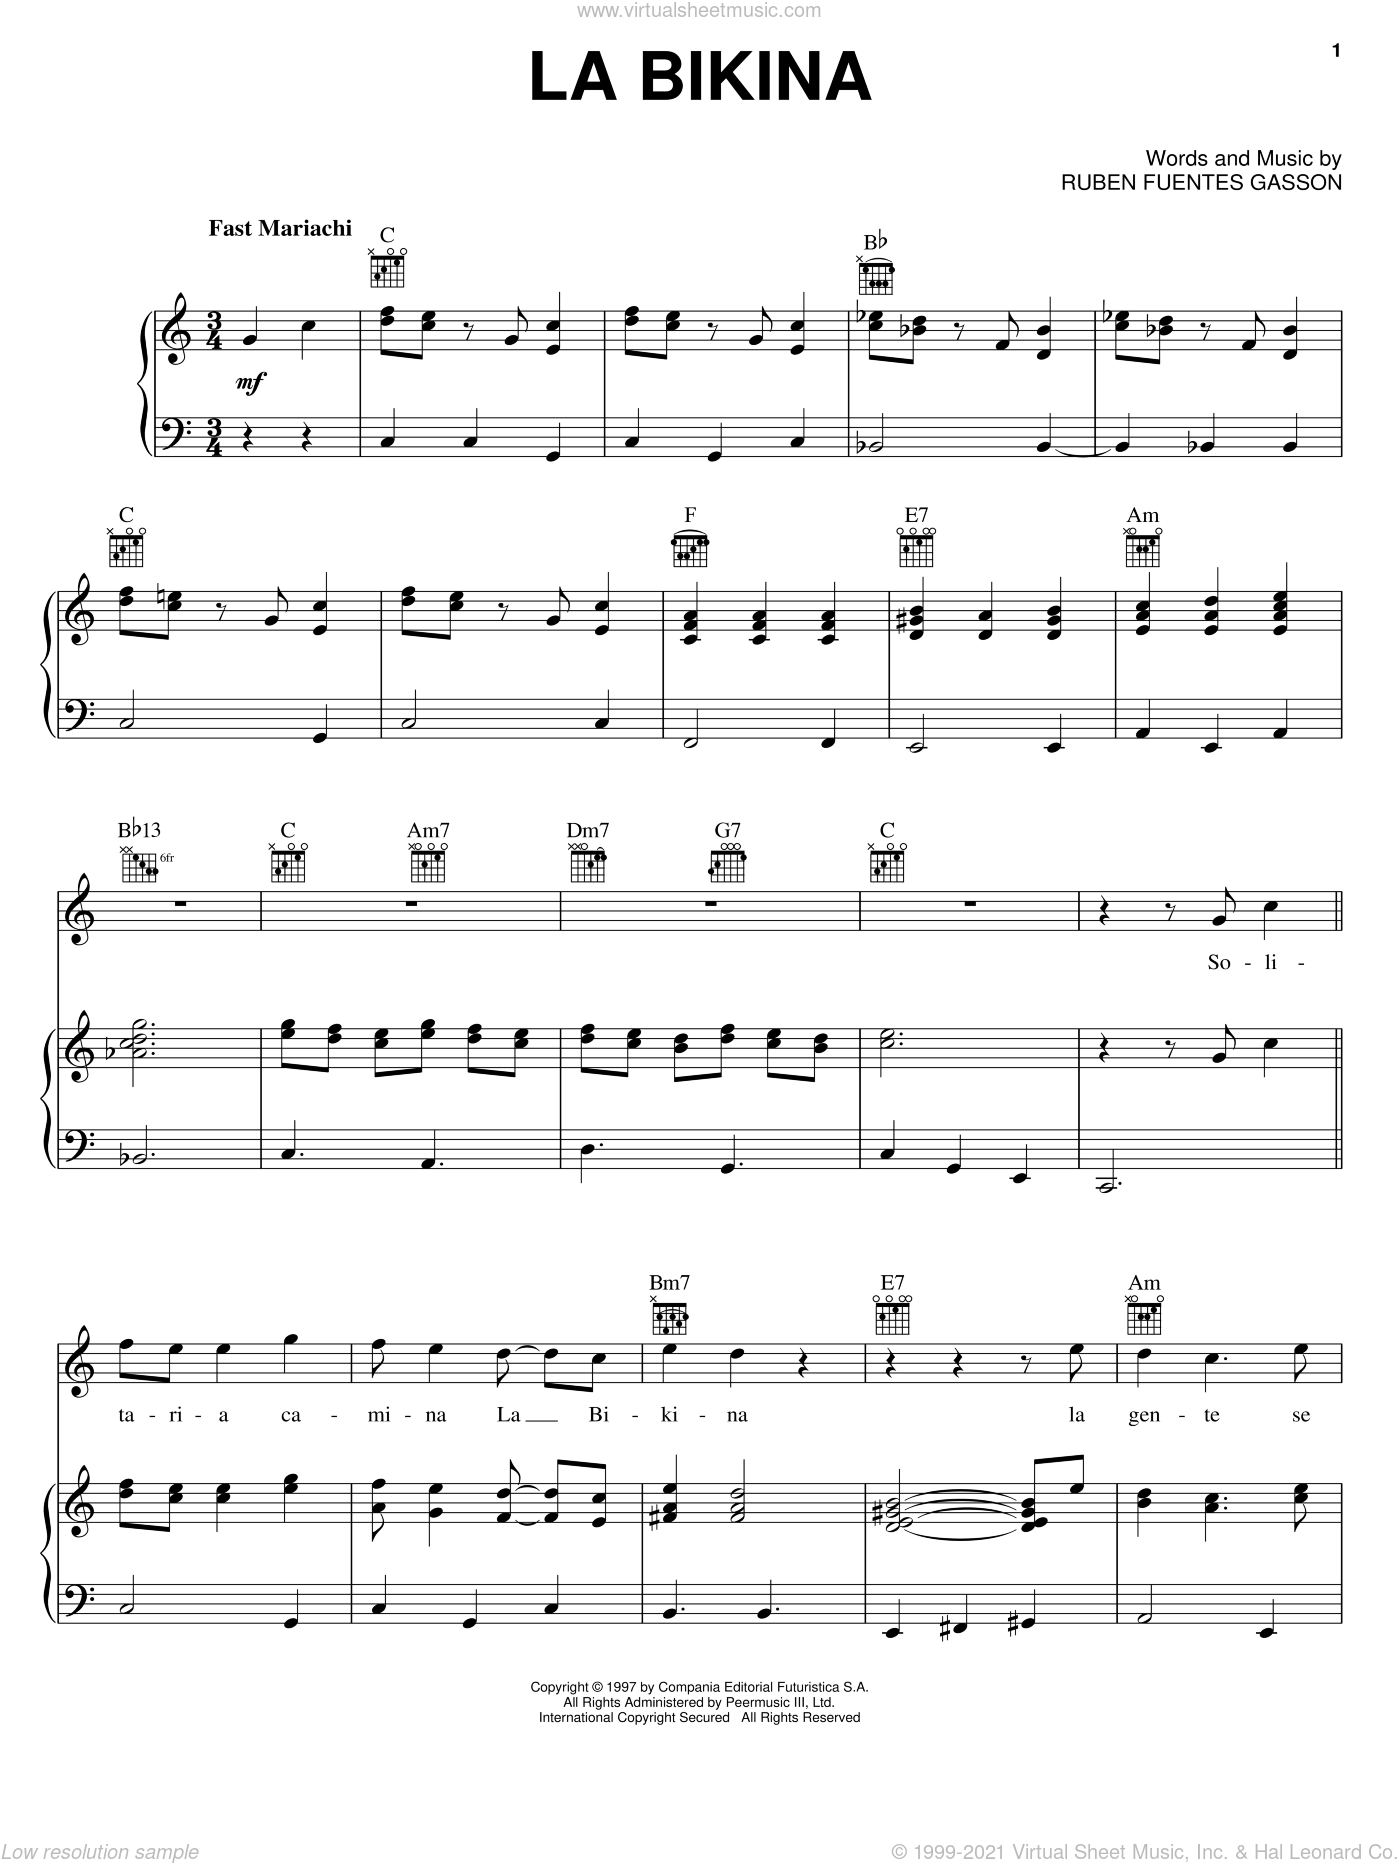 La Bikina sheet music for voice, piano or guitar by Ruben Fuentes Gasson, intermediate skill level